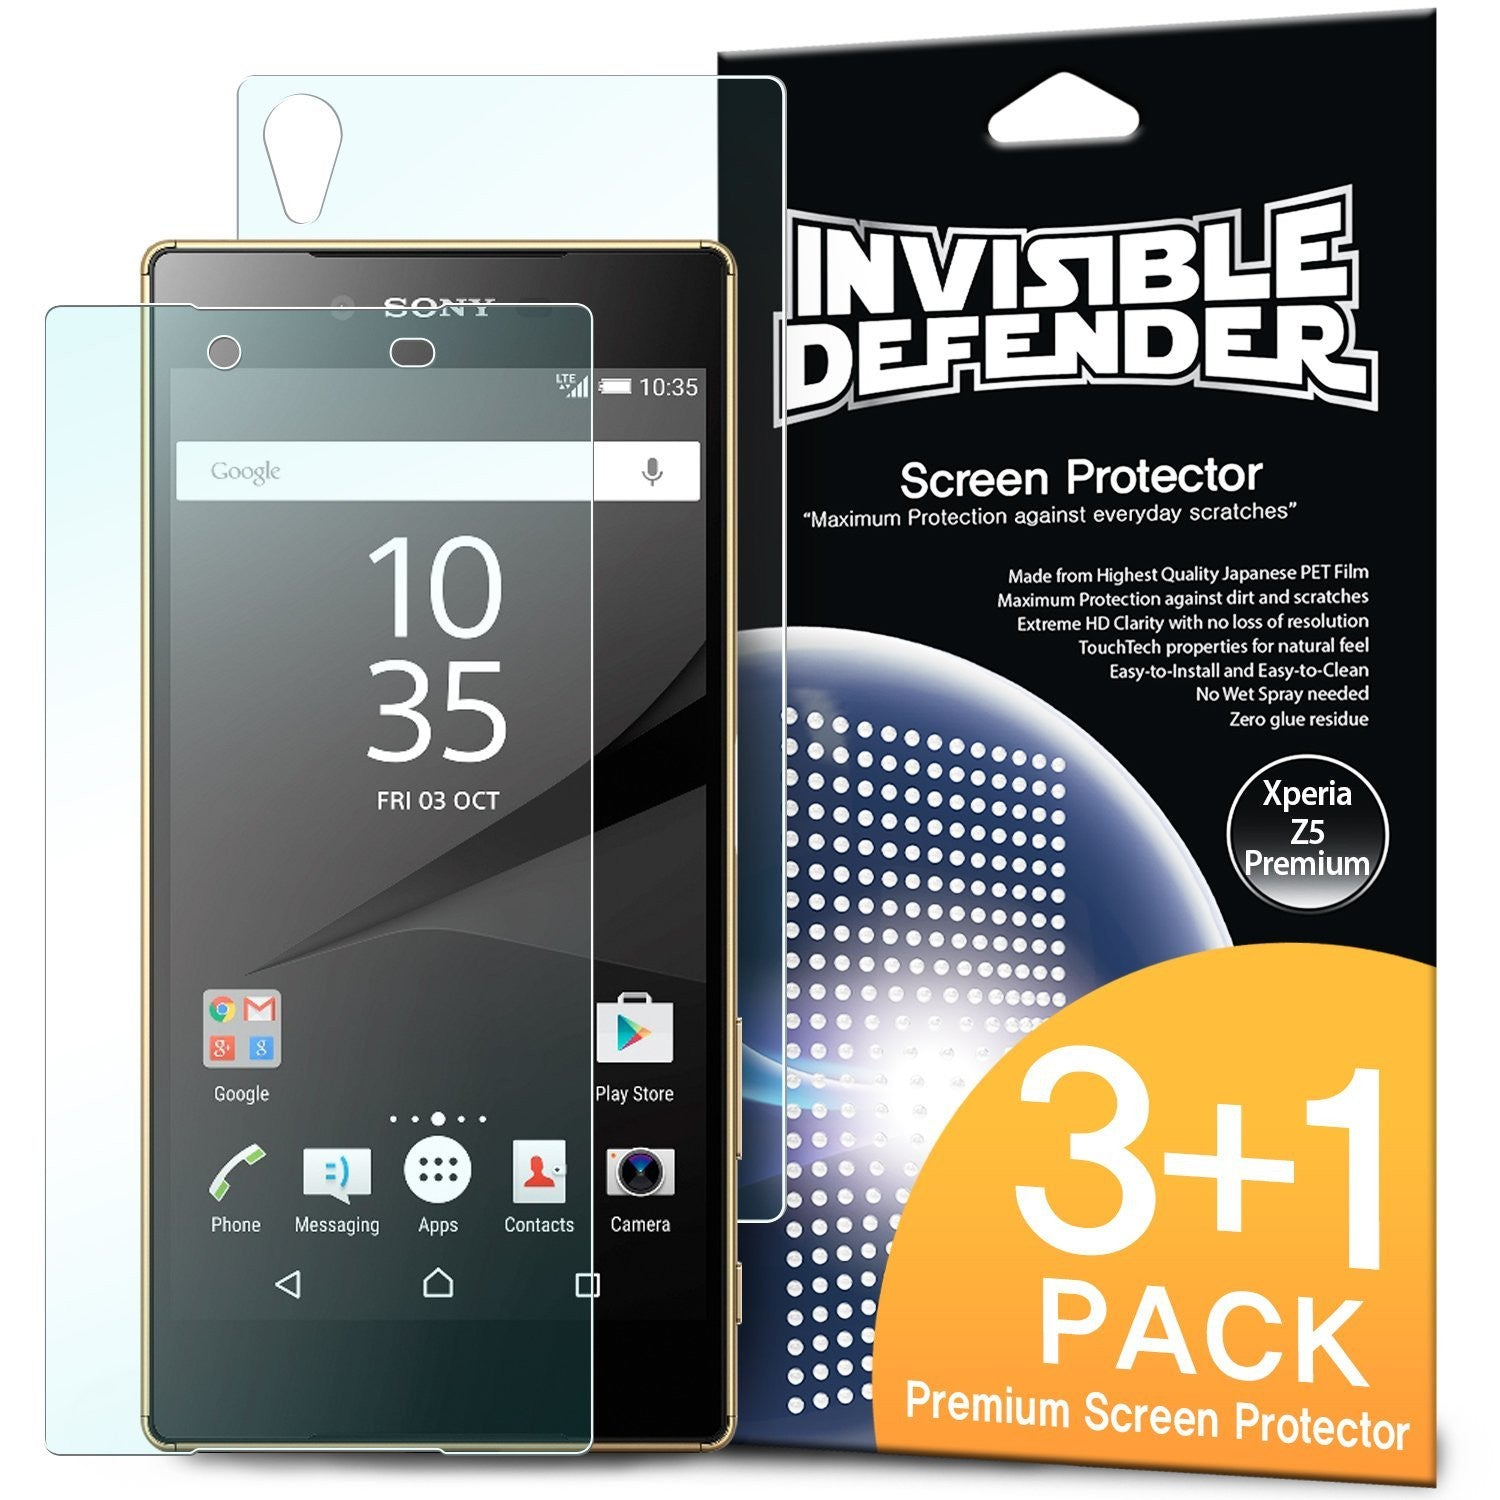 xperia z5 compact, ringke invisible defender 3+1 pack screen protector